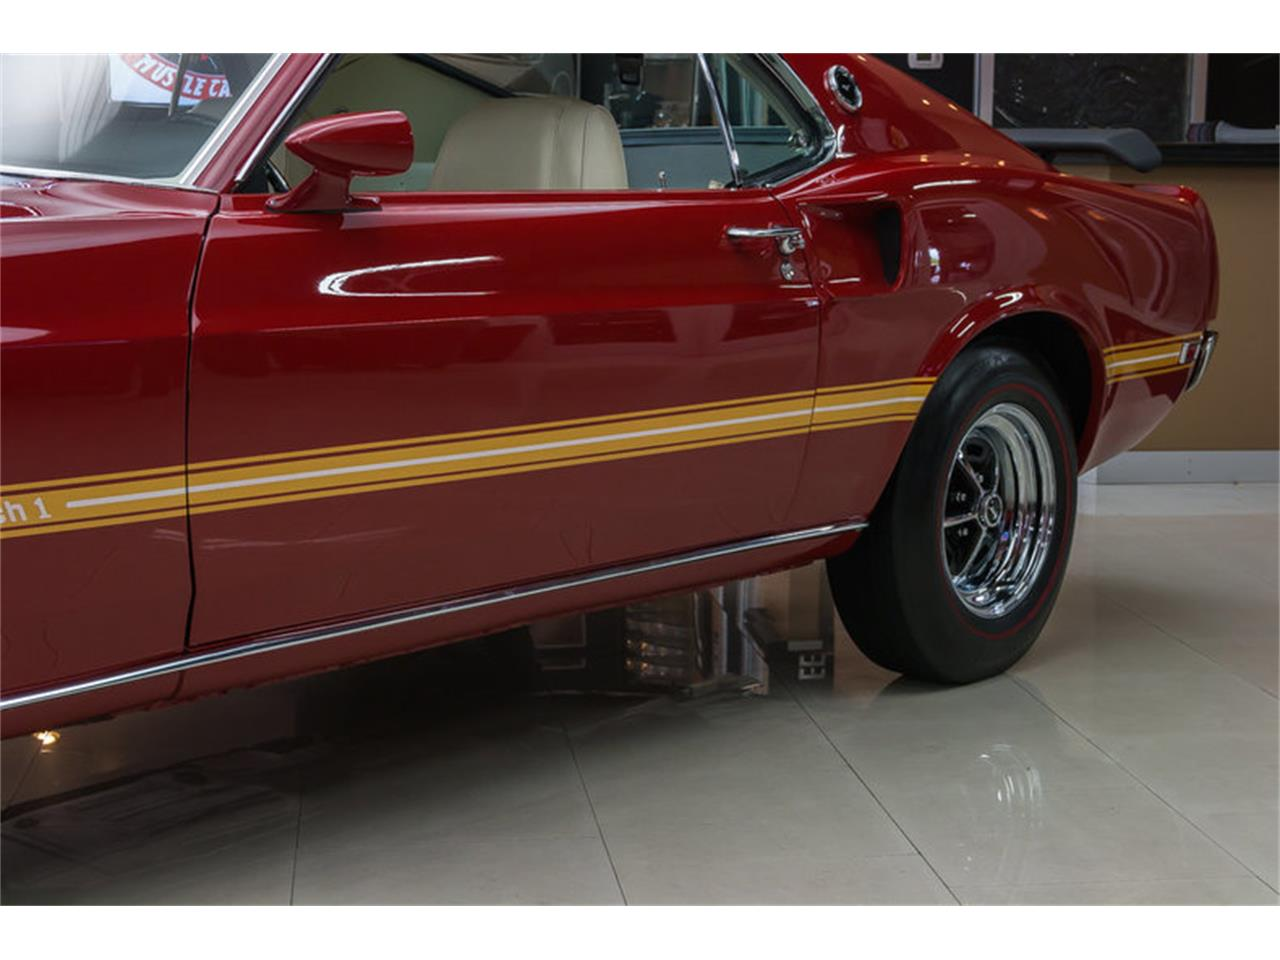 Large Picture of 1969 Mustang Mach 1 S Code located in Plymouth Michigan - $59,900.00 - IS3G